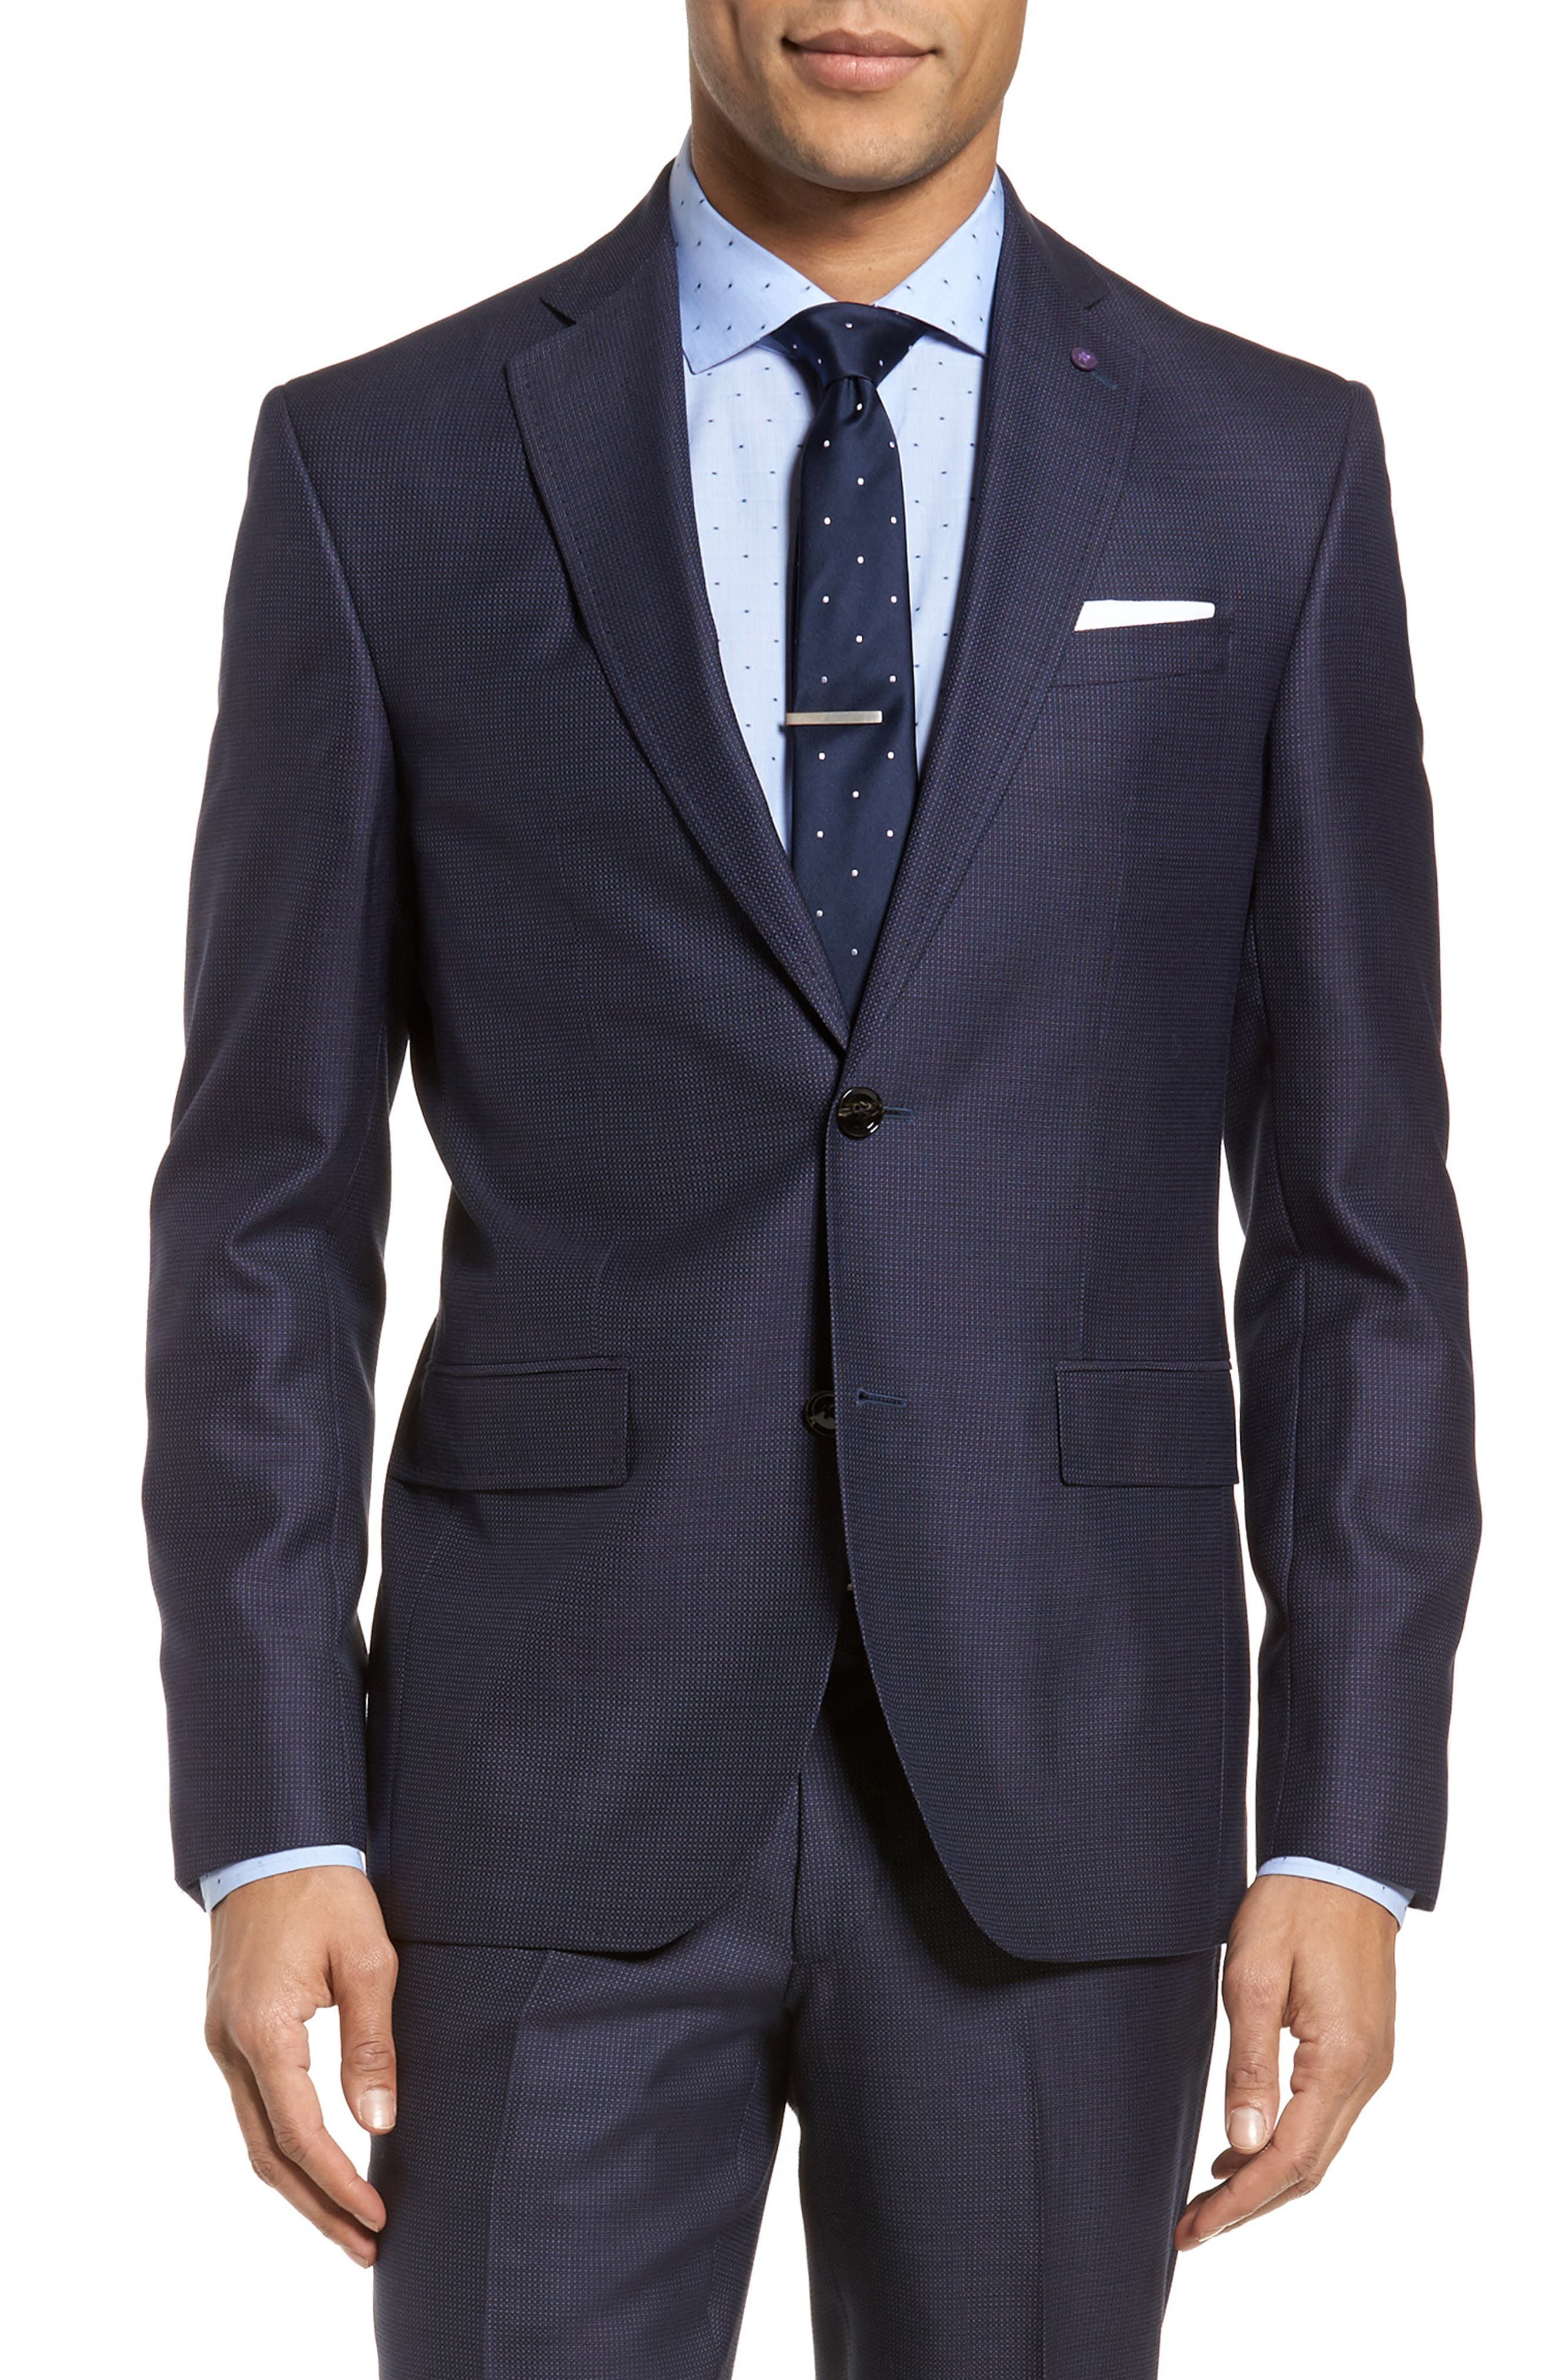 Roger Extra Slim Fit Solid Wool Suit,                             Alternate thumbnail 5, color,                             410